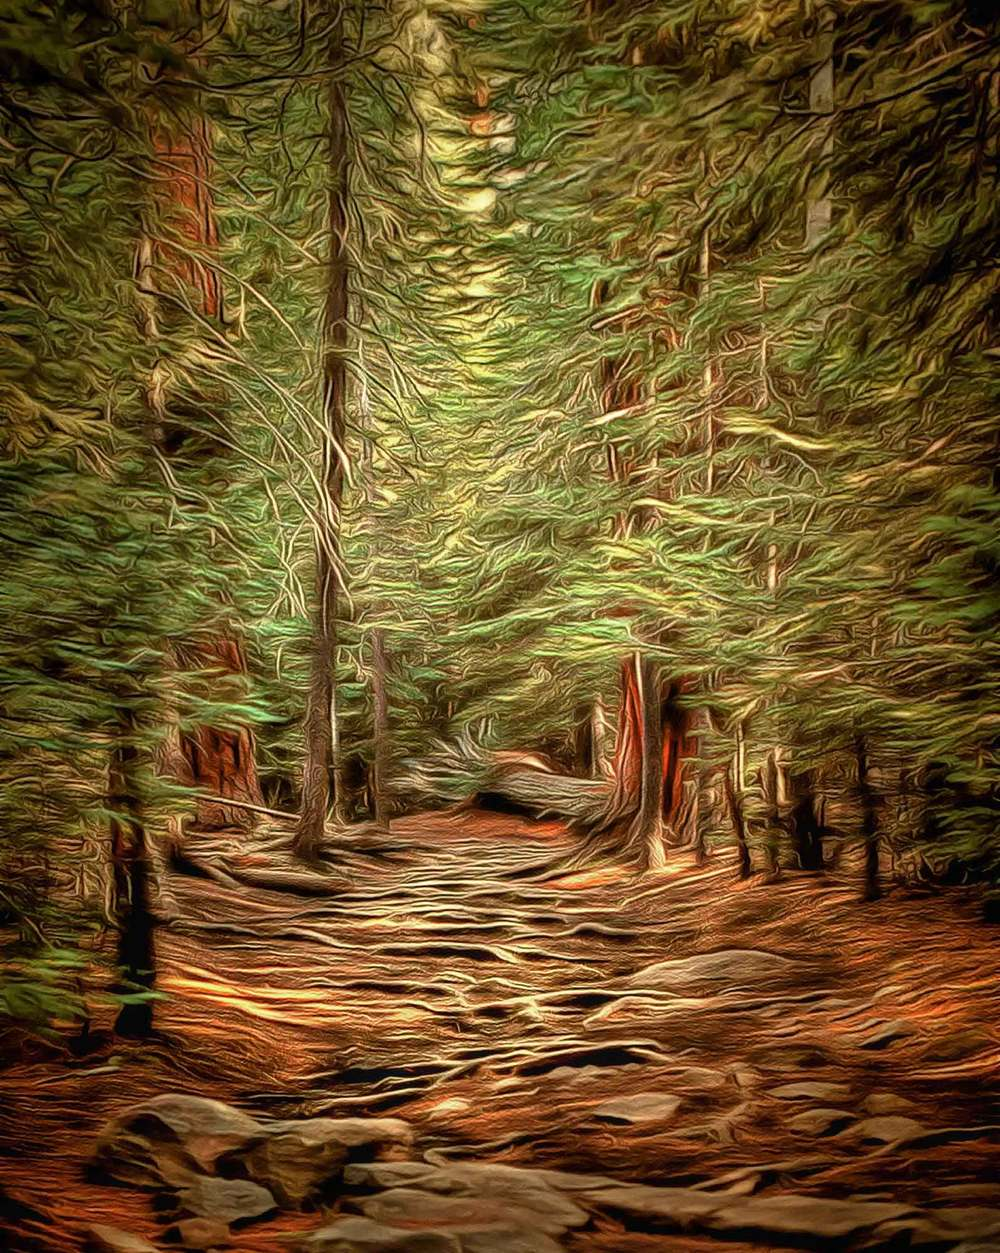 SmithG_enchanted_forest24x30LR.jpg